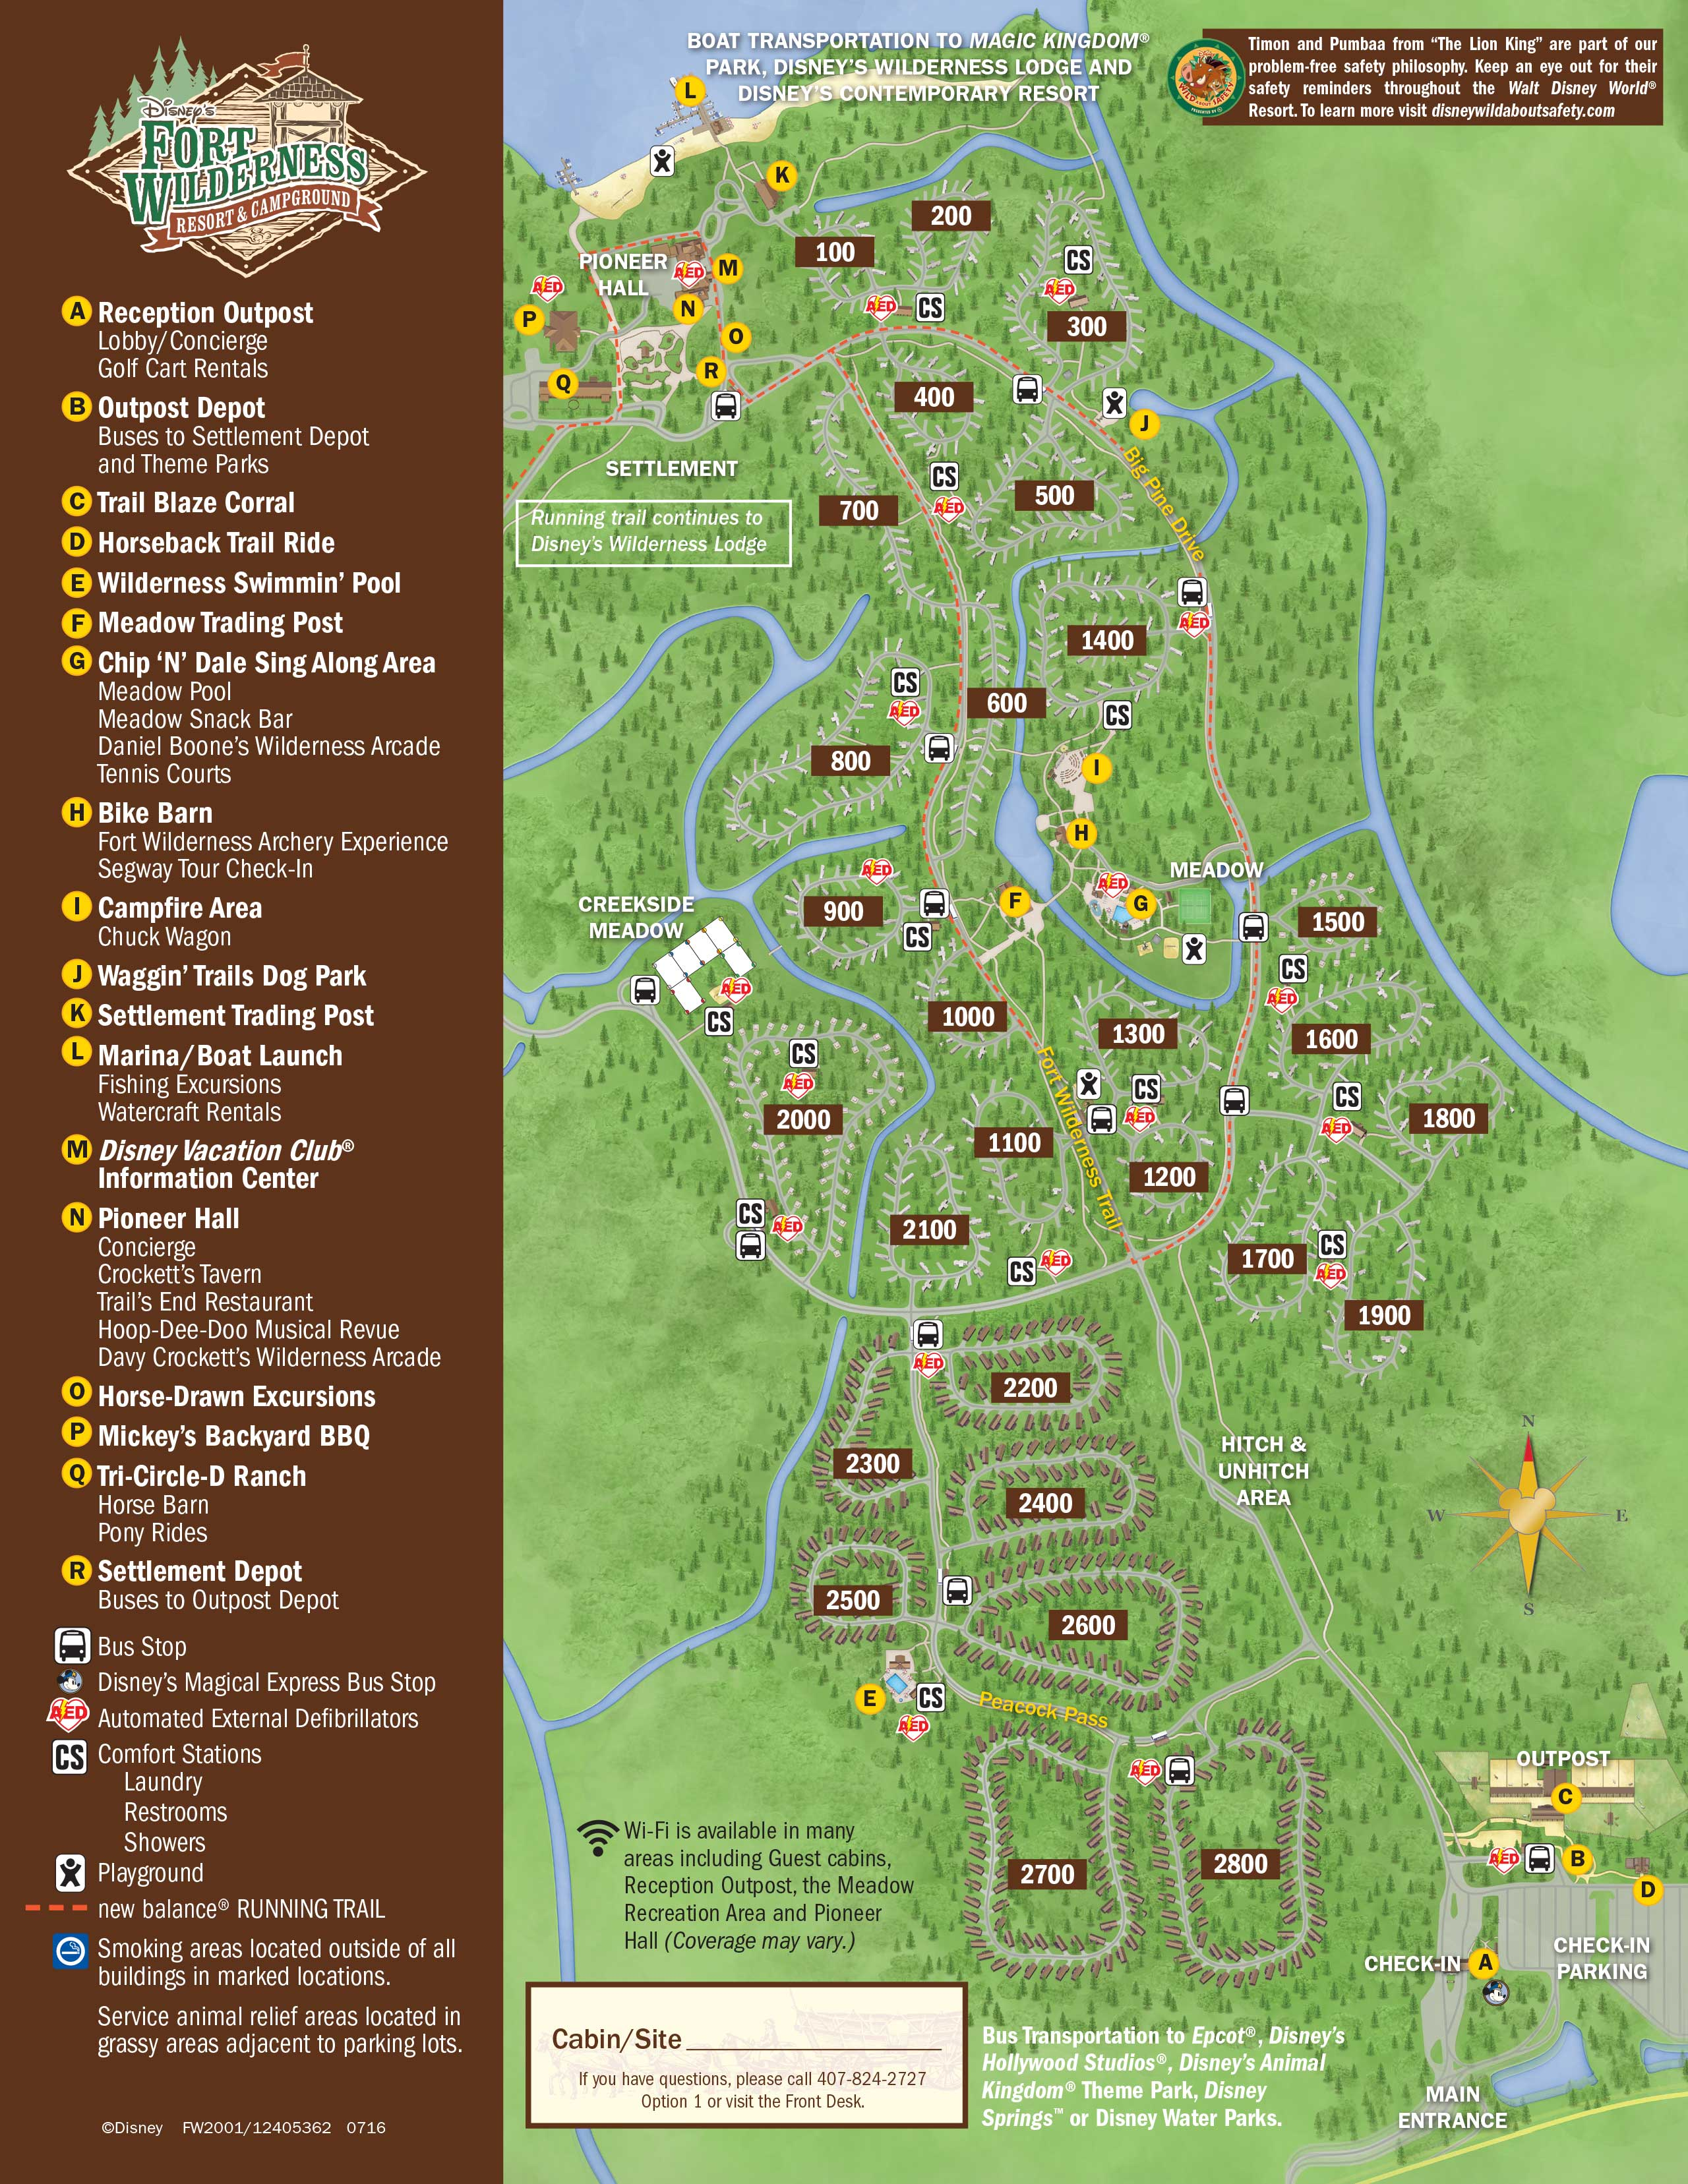 Disney Fort Wilderness Map April 2017 Walt Disney World Resort Hotel Maps   Photo 23 of 33 Disney Fort Wilderness Map